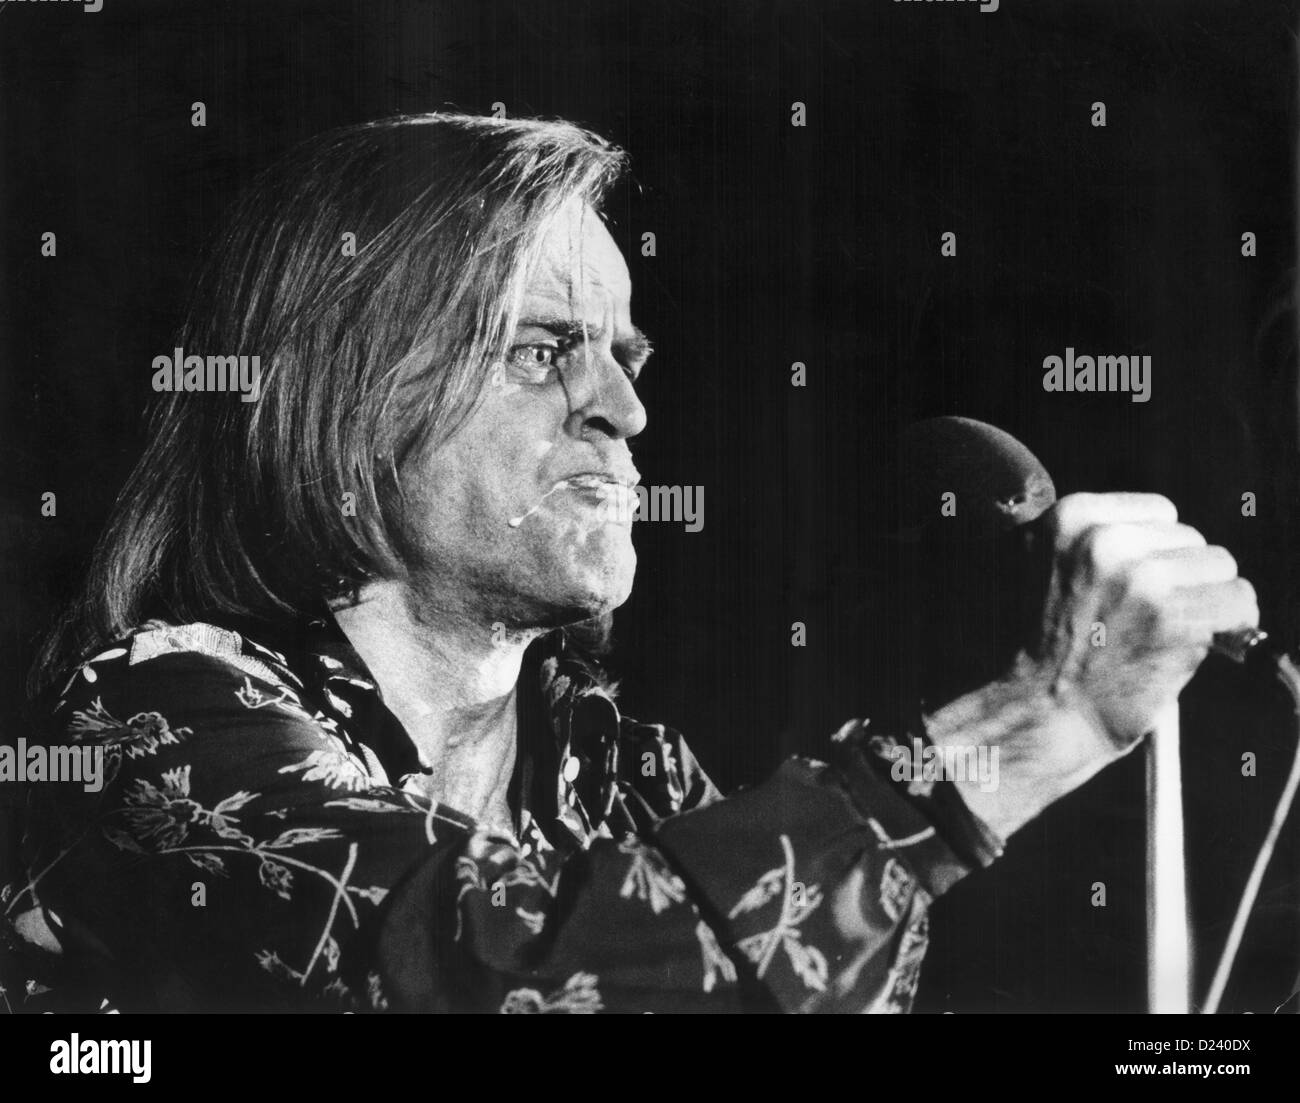 Actor Klaus Kinski presents his version of the 'New Testament' in the Philipshalle in Düsseldorf on - Stock Image